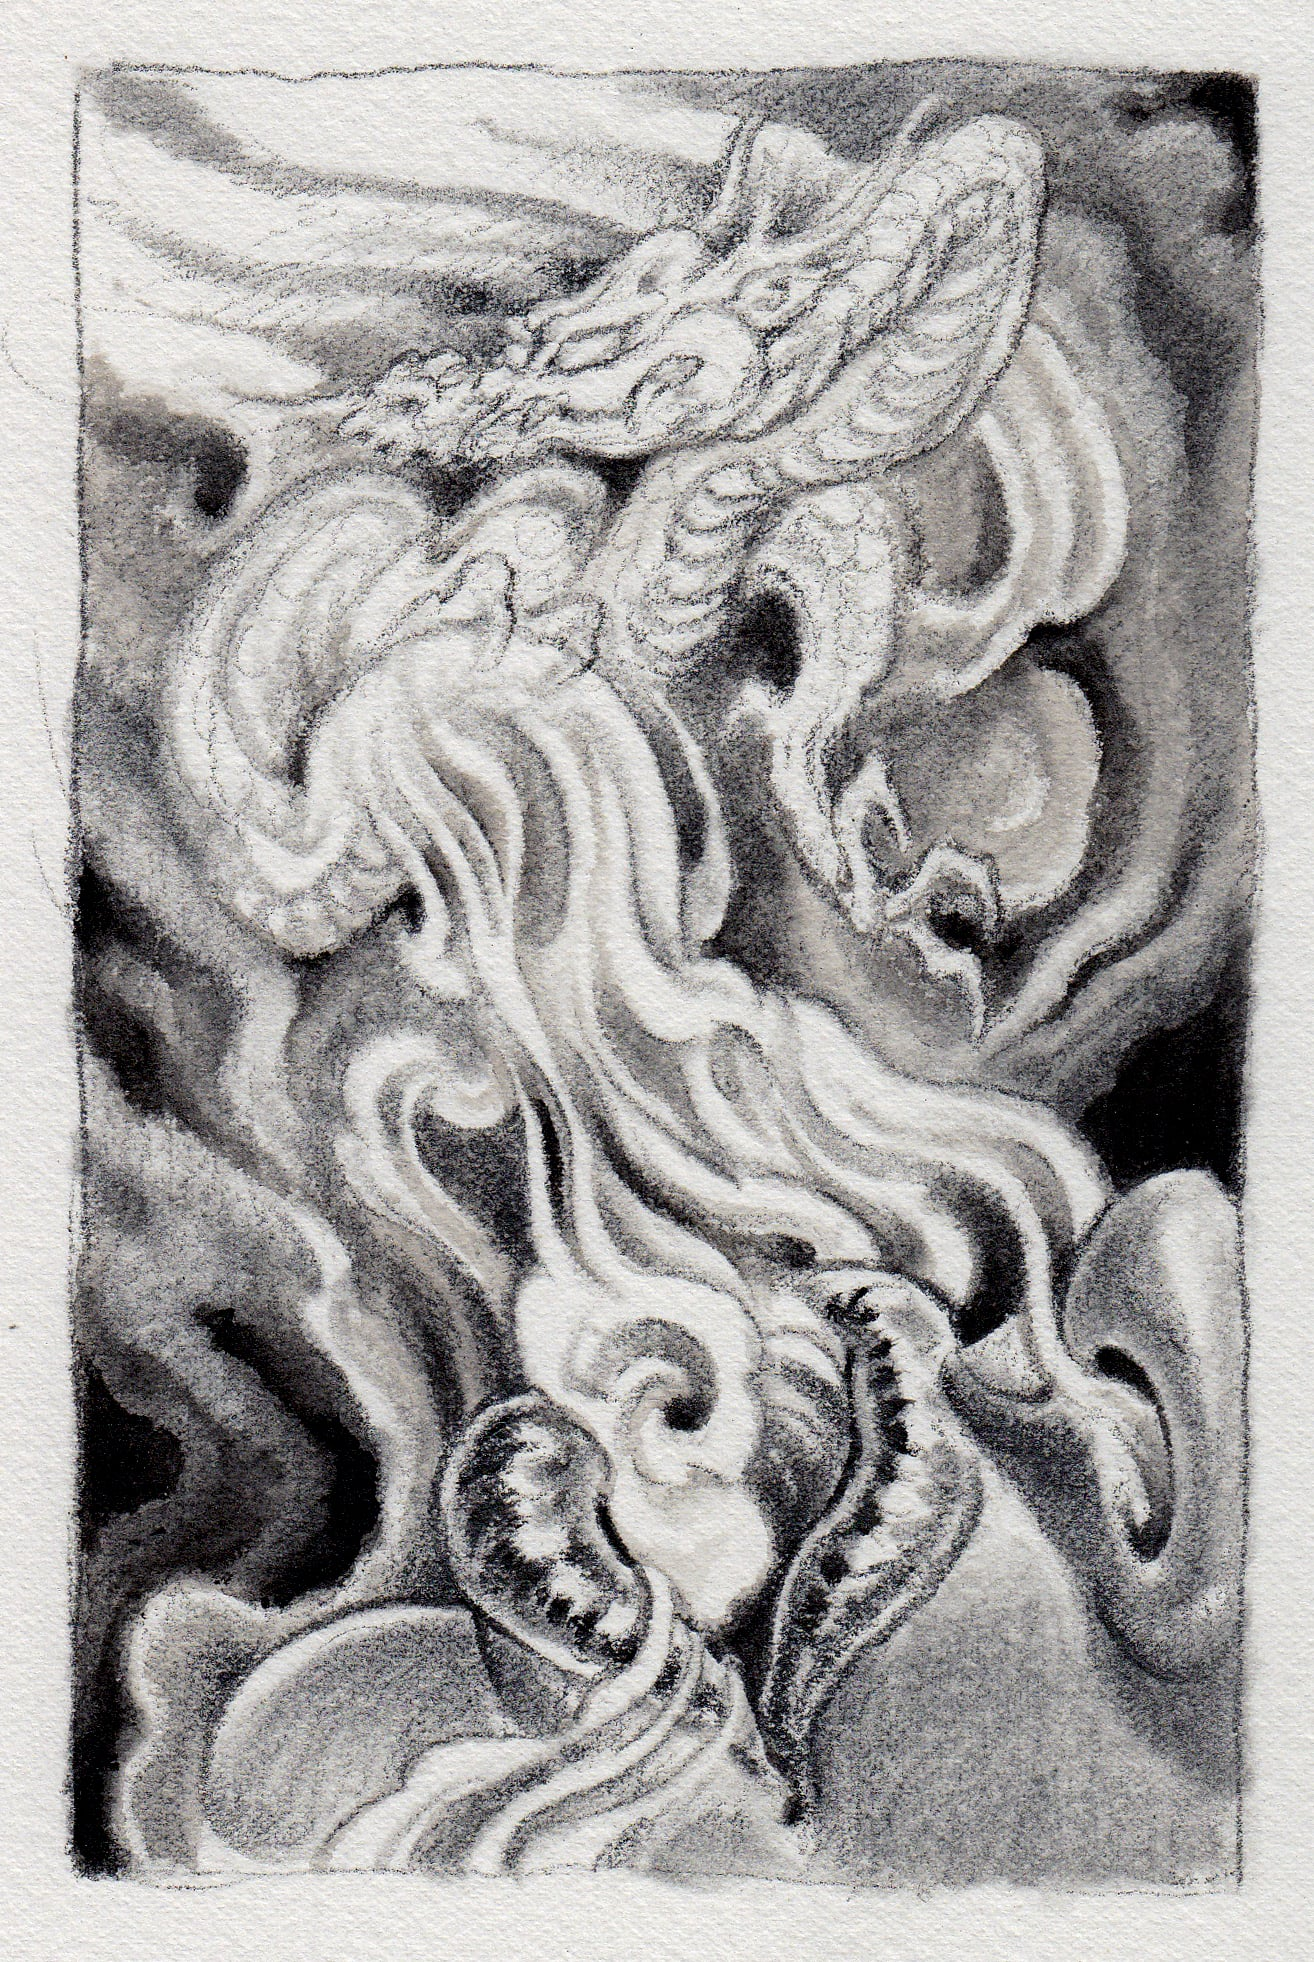 """Exhale . 2012 - graphite and watercolor on paper. 4"""" x 6""""."""